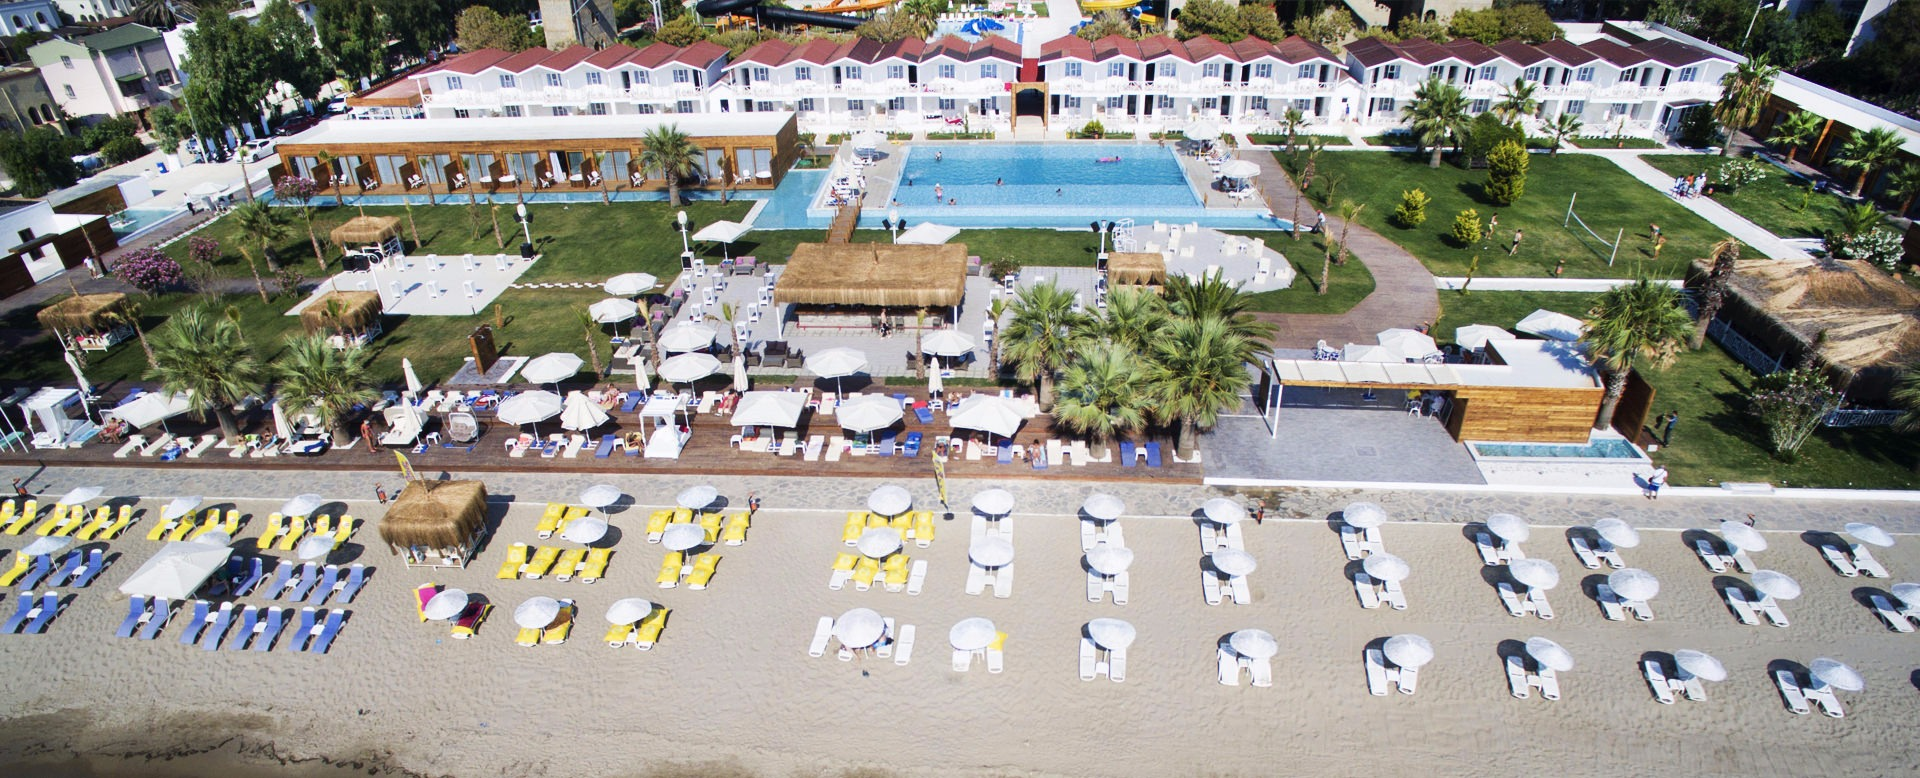 Risus Aqua Beach Resort44053